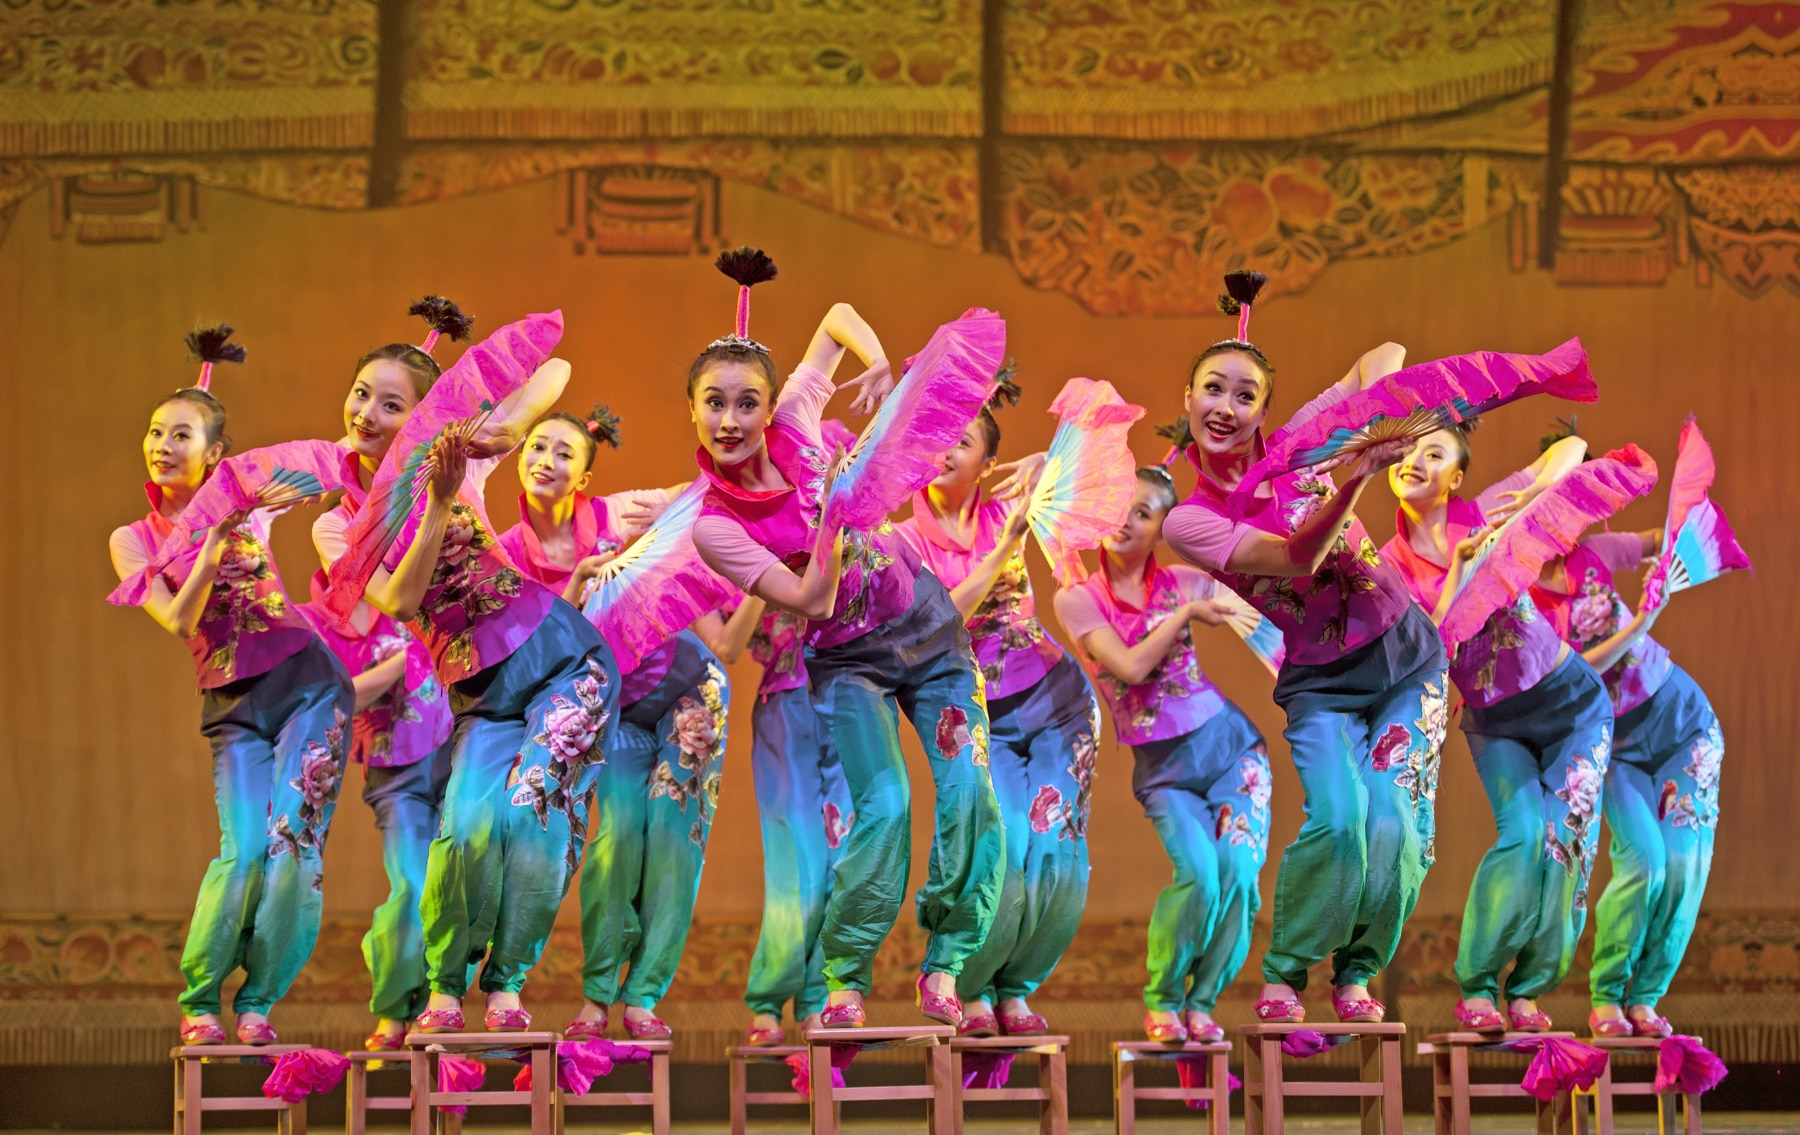 Young Chinese women in colorful garb dancing onstage (Shutterstock)